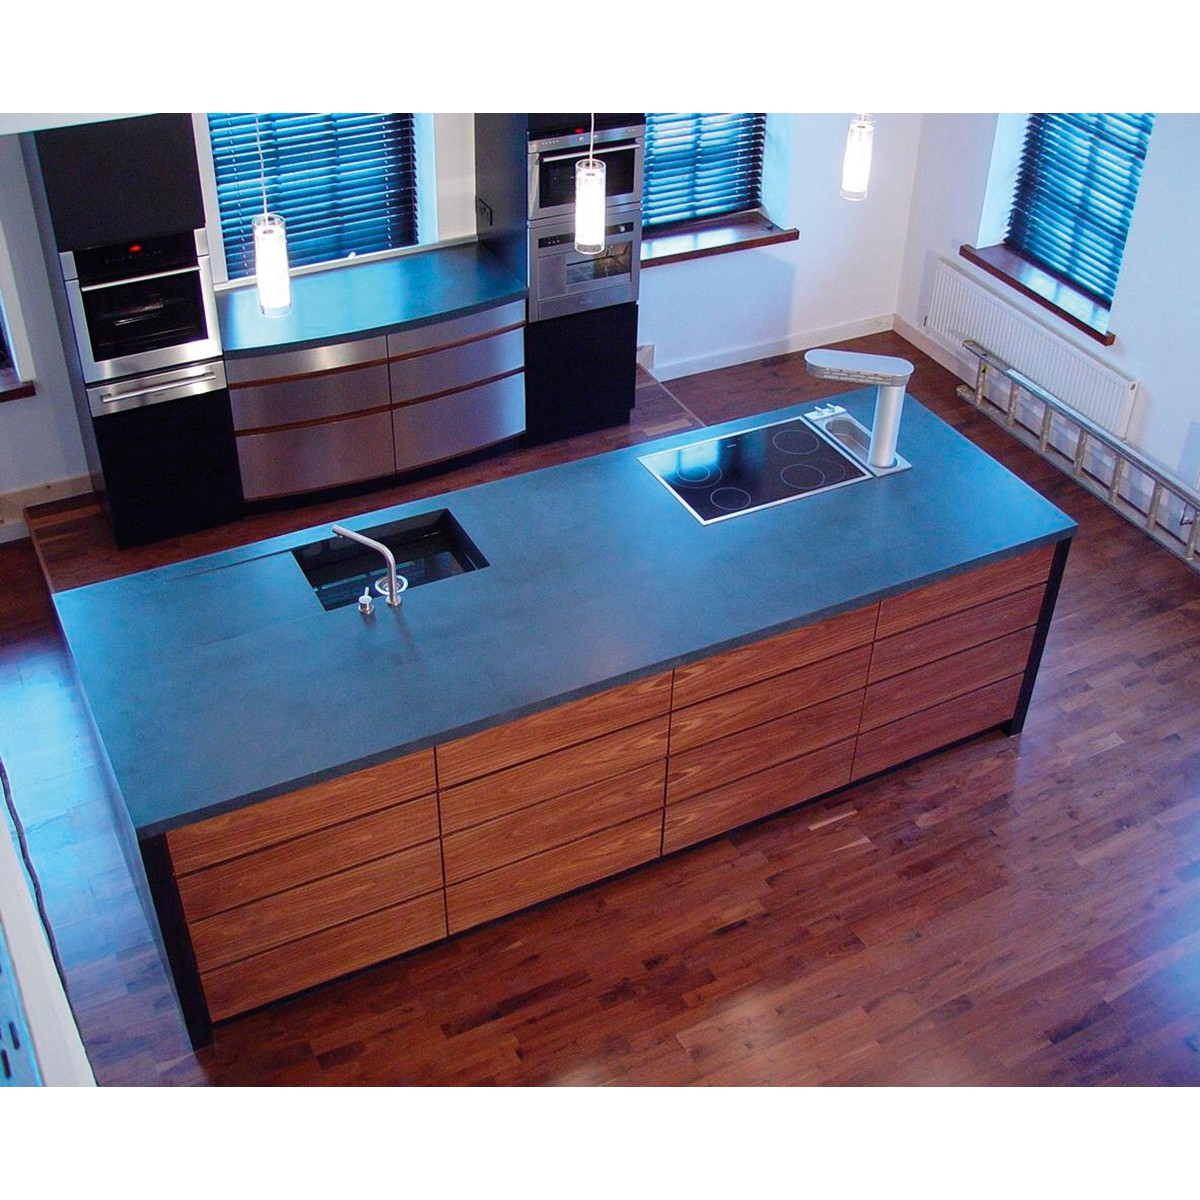 Durat 660 Recycled Polyester Countertop